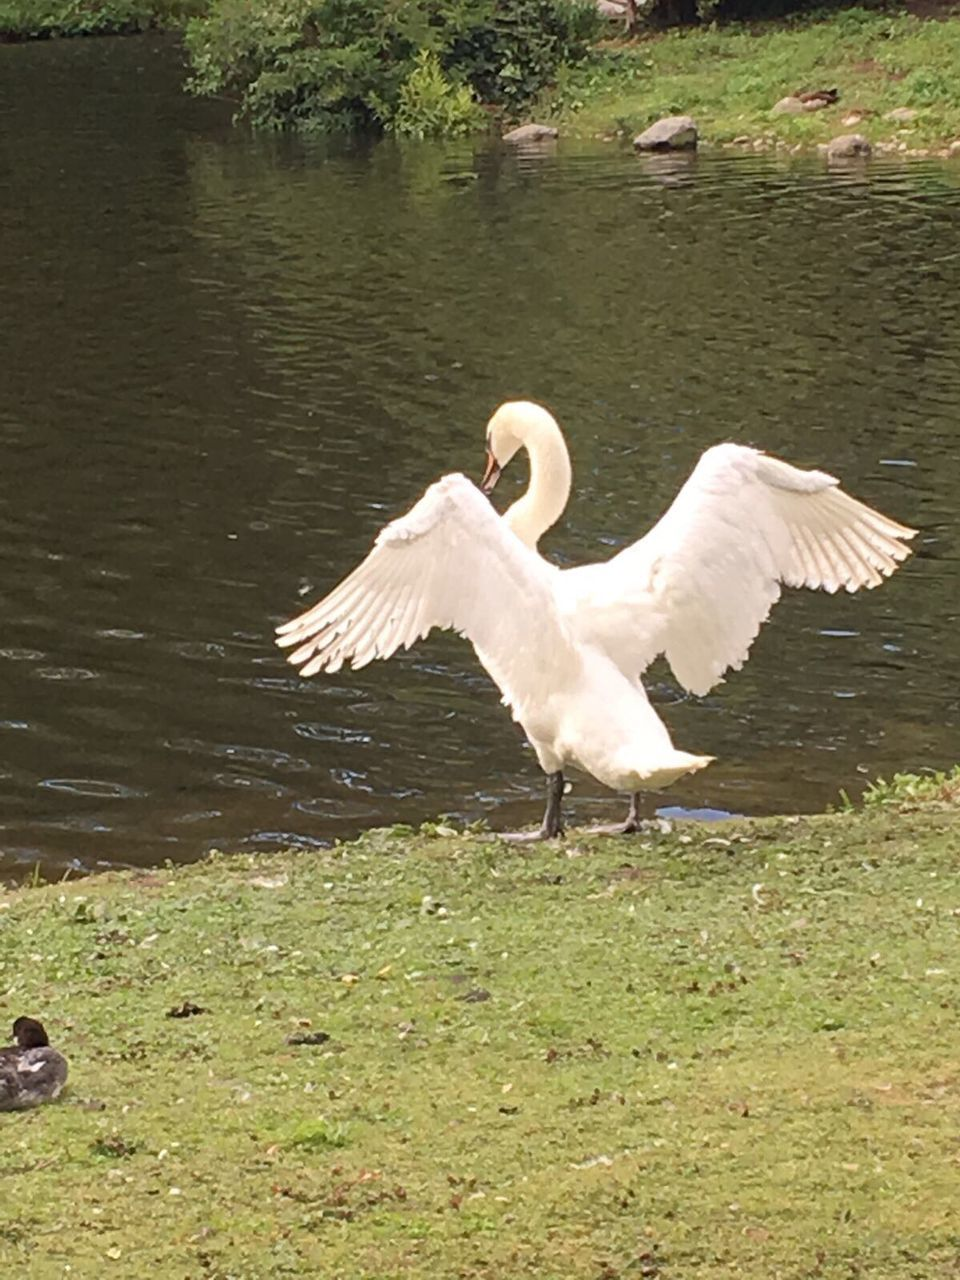 bird, animal themes, animals in the wild, animal wildlife, white color, lake, nature, one animal, grass, day, water, outdoors, no people, spread wings, swan, tree, beauty in nature